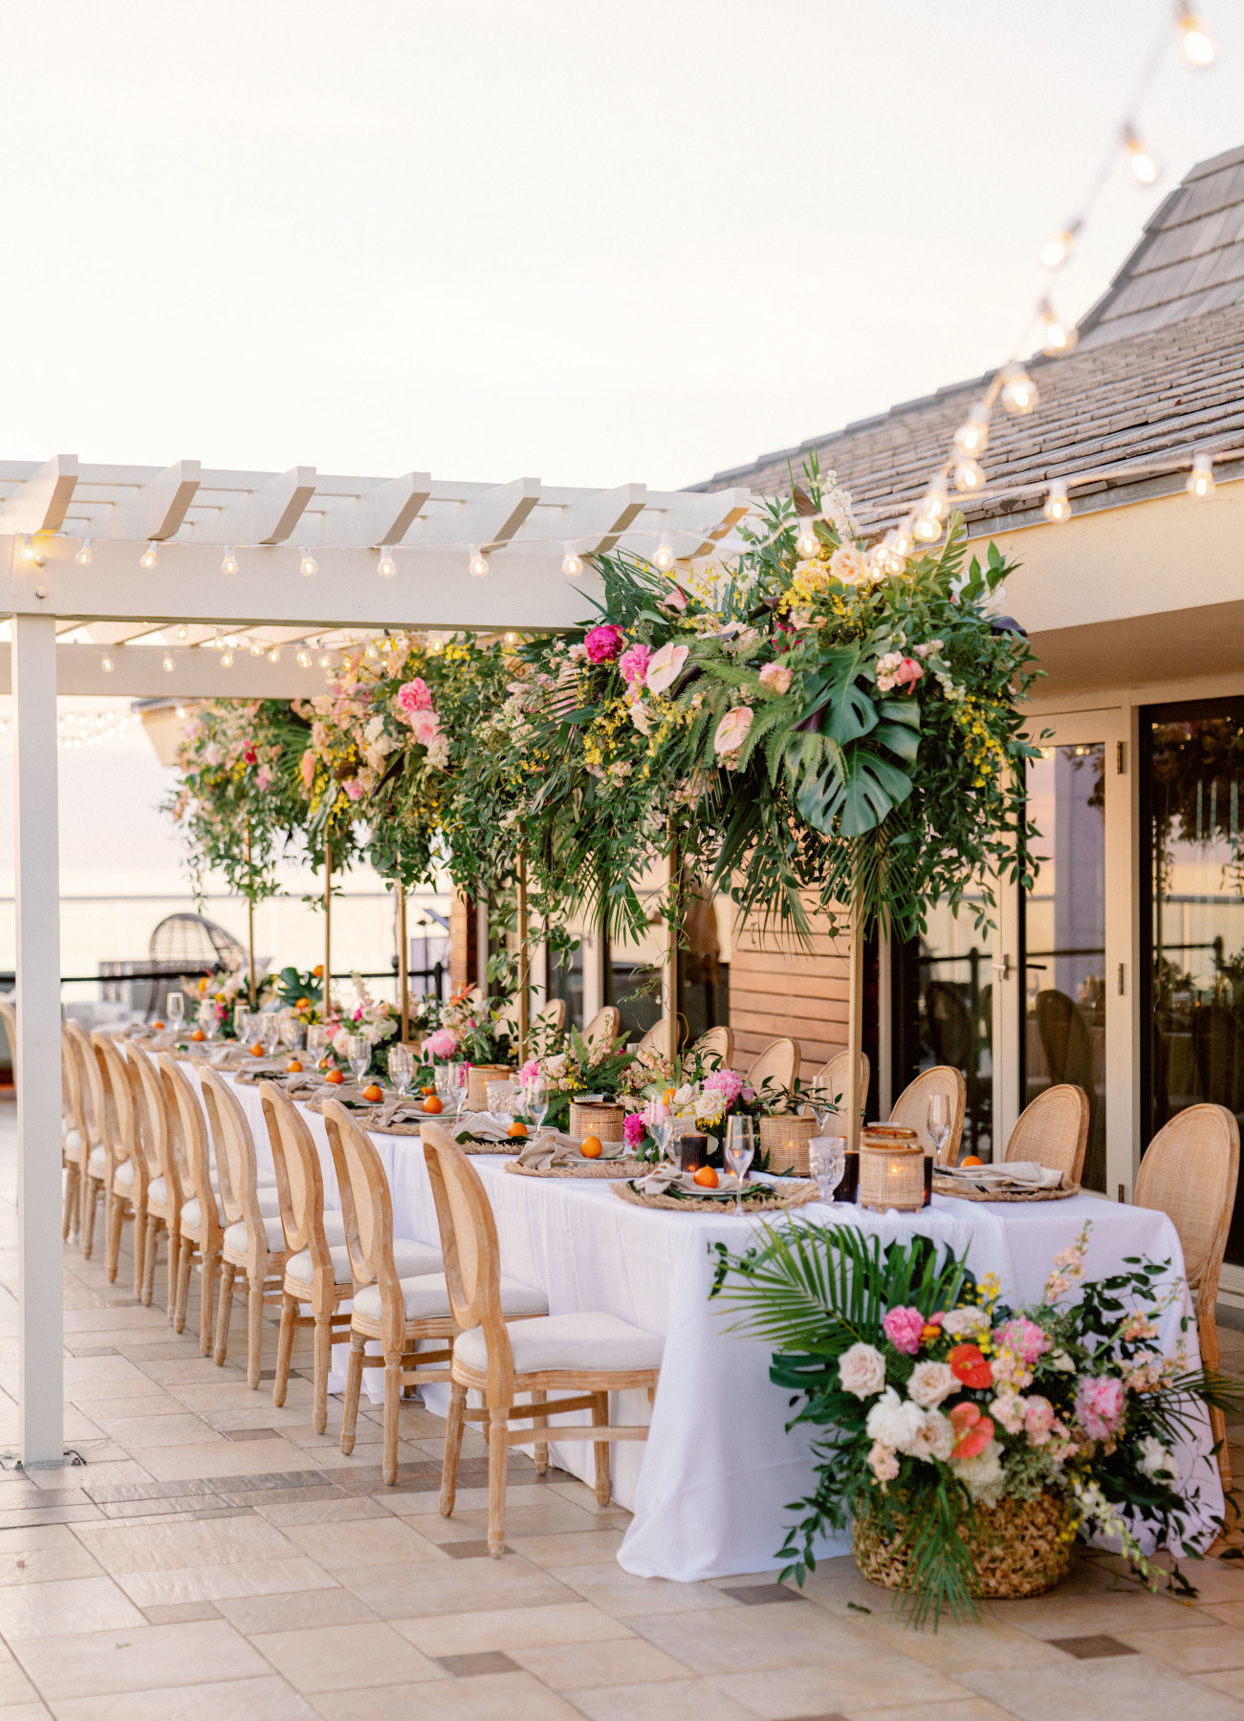 long reception table with white table cloth